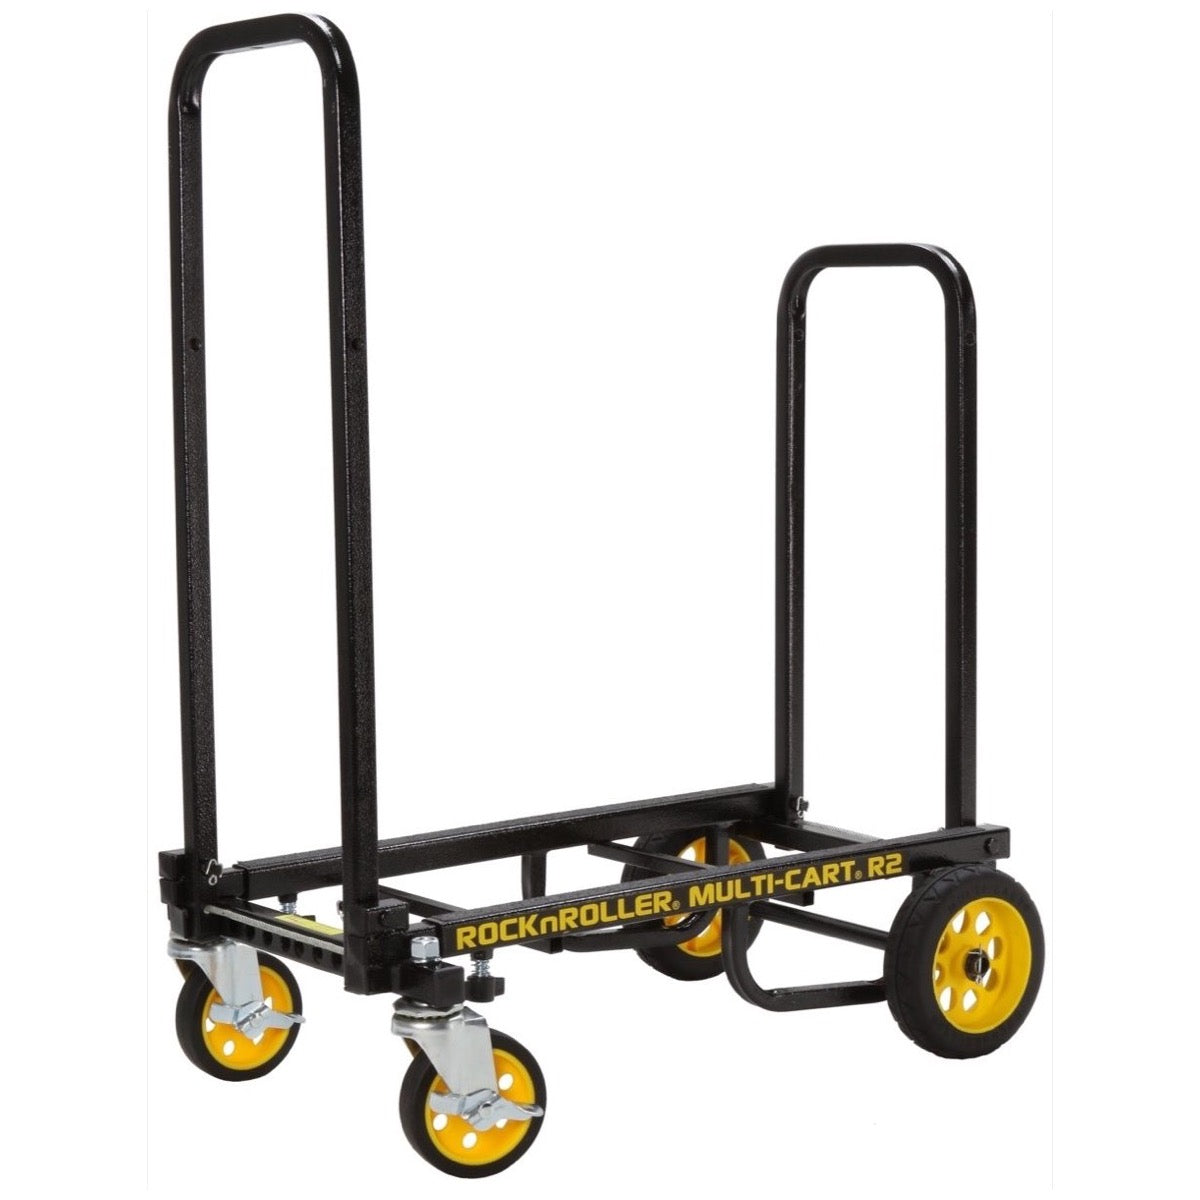 RocknRoller R2RT Multi-Cart, Black